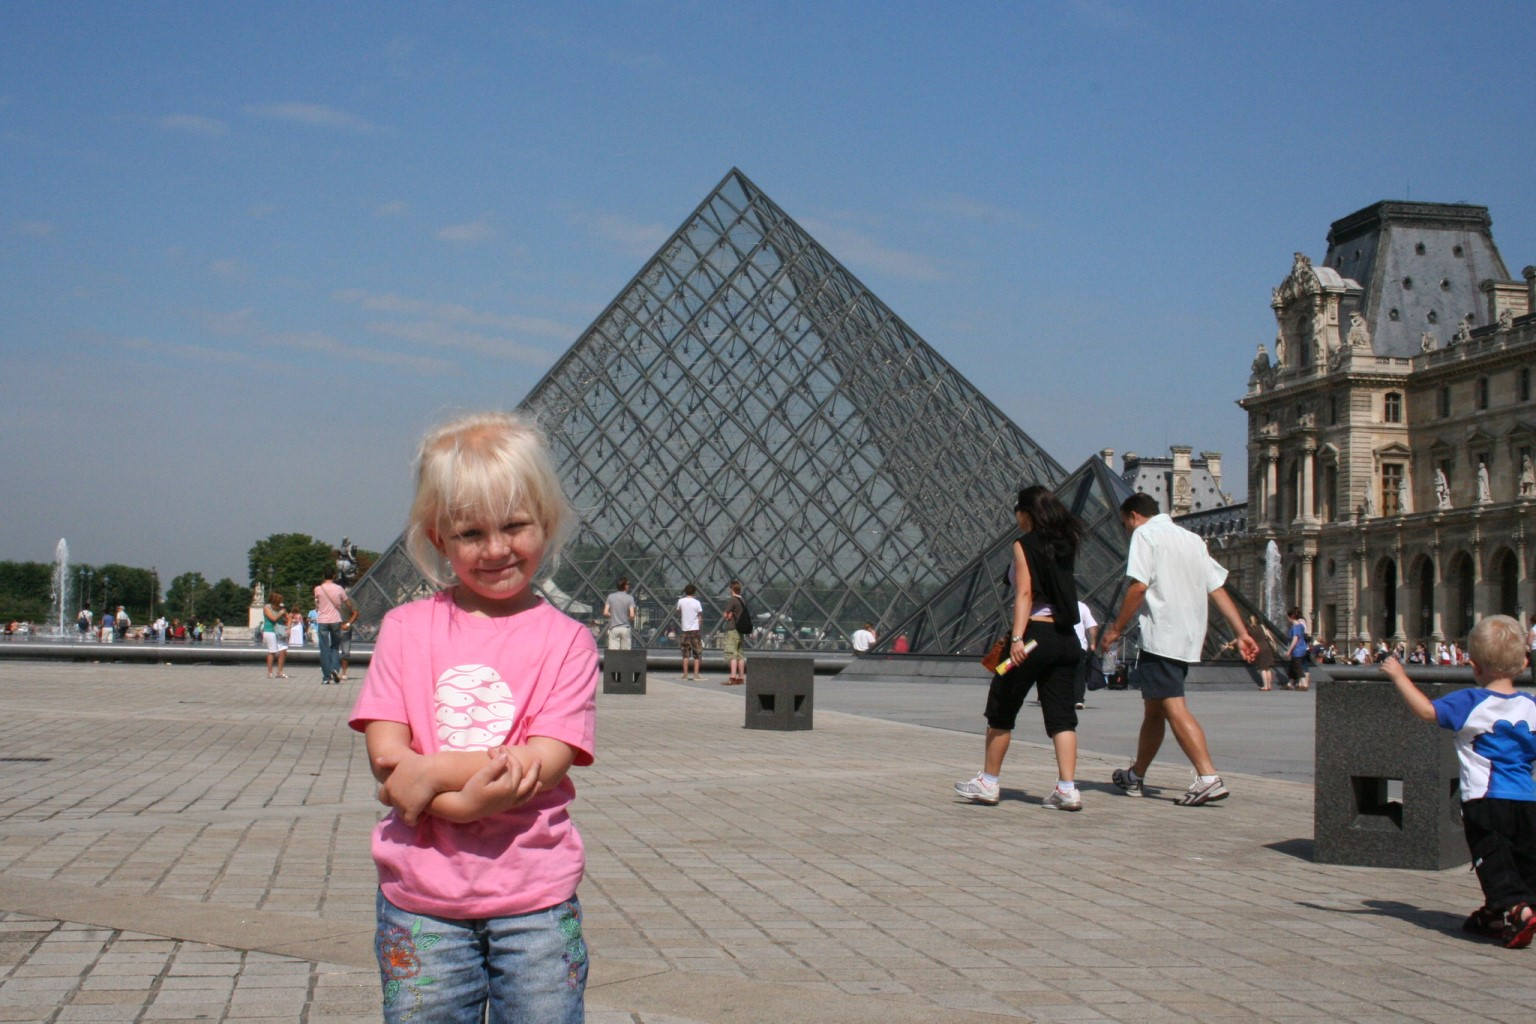 cute kid in front of Louvre pyramid